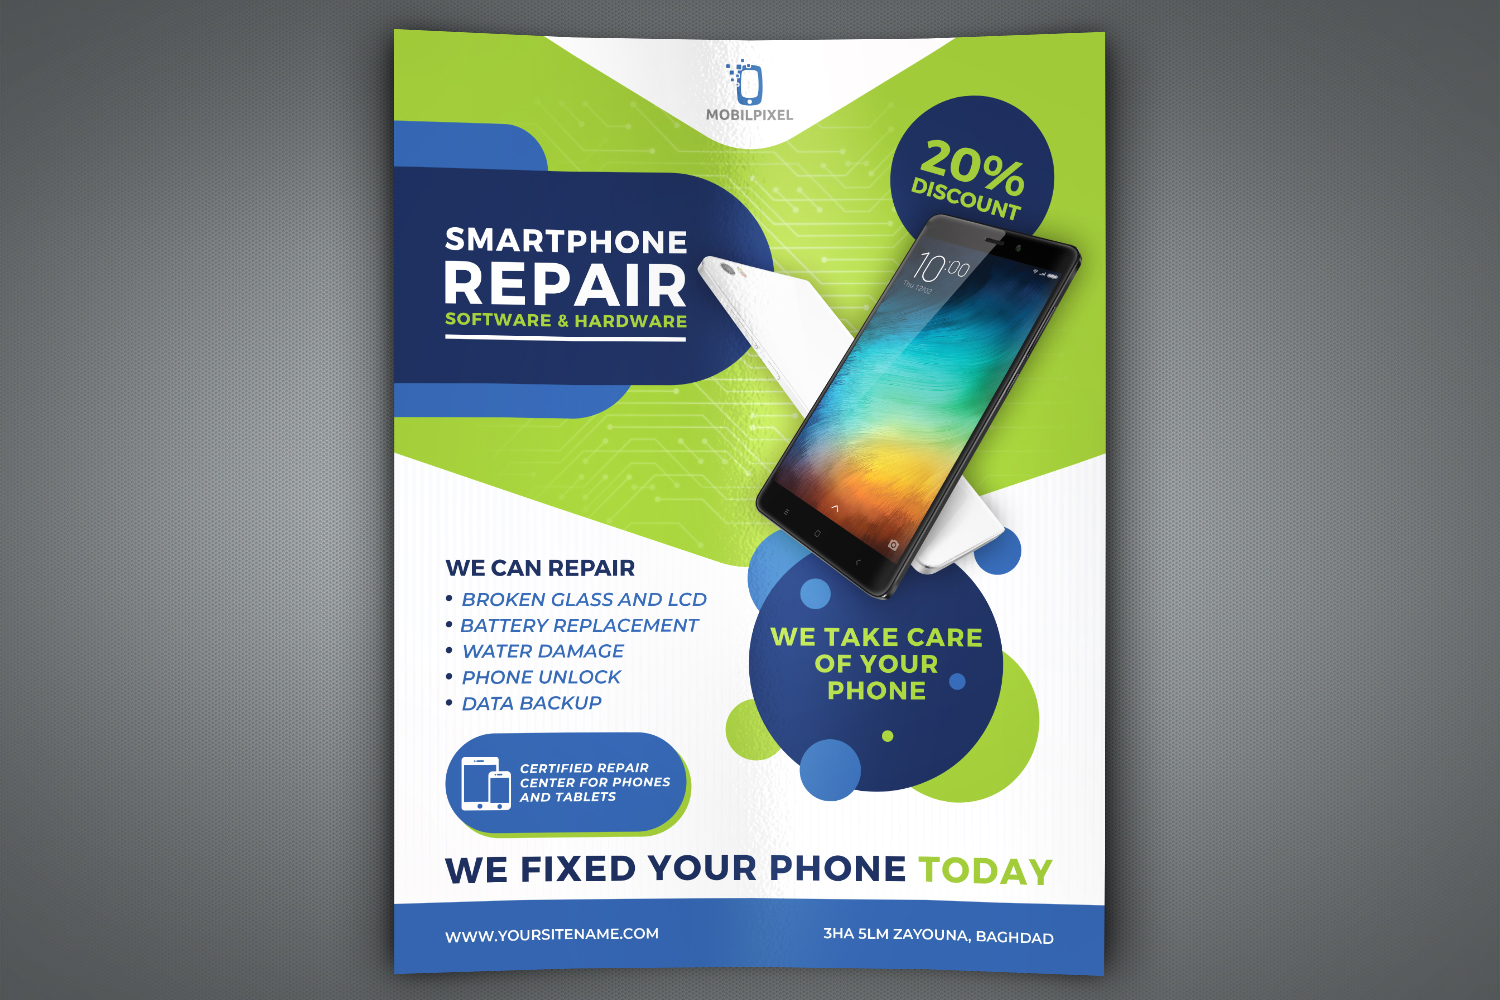 Smartphone Repair Service Flyer Template example image 1